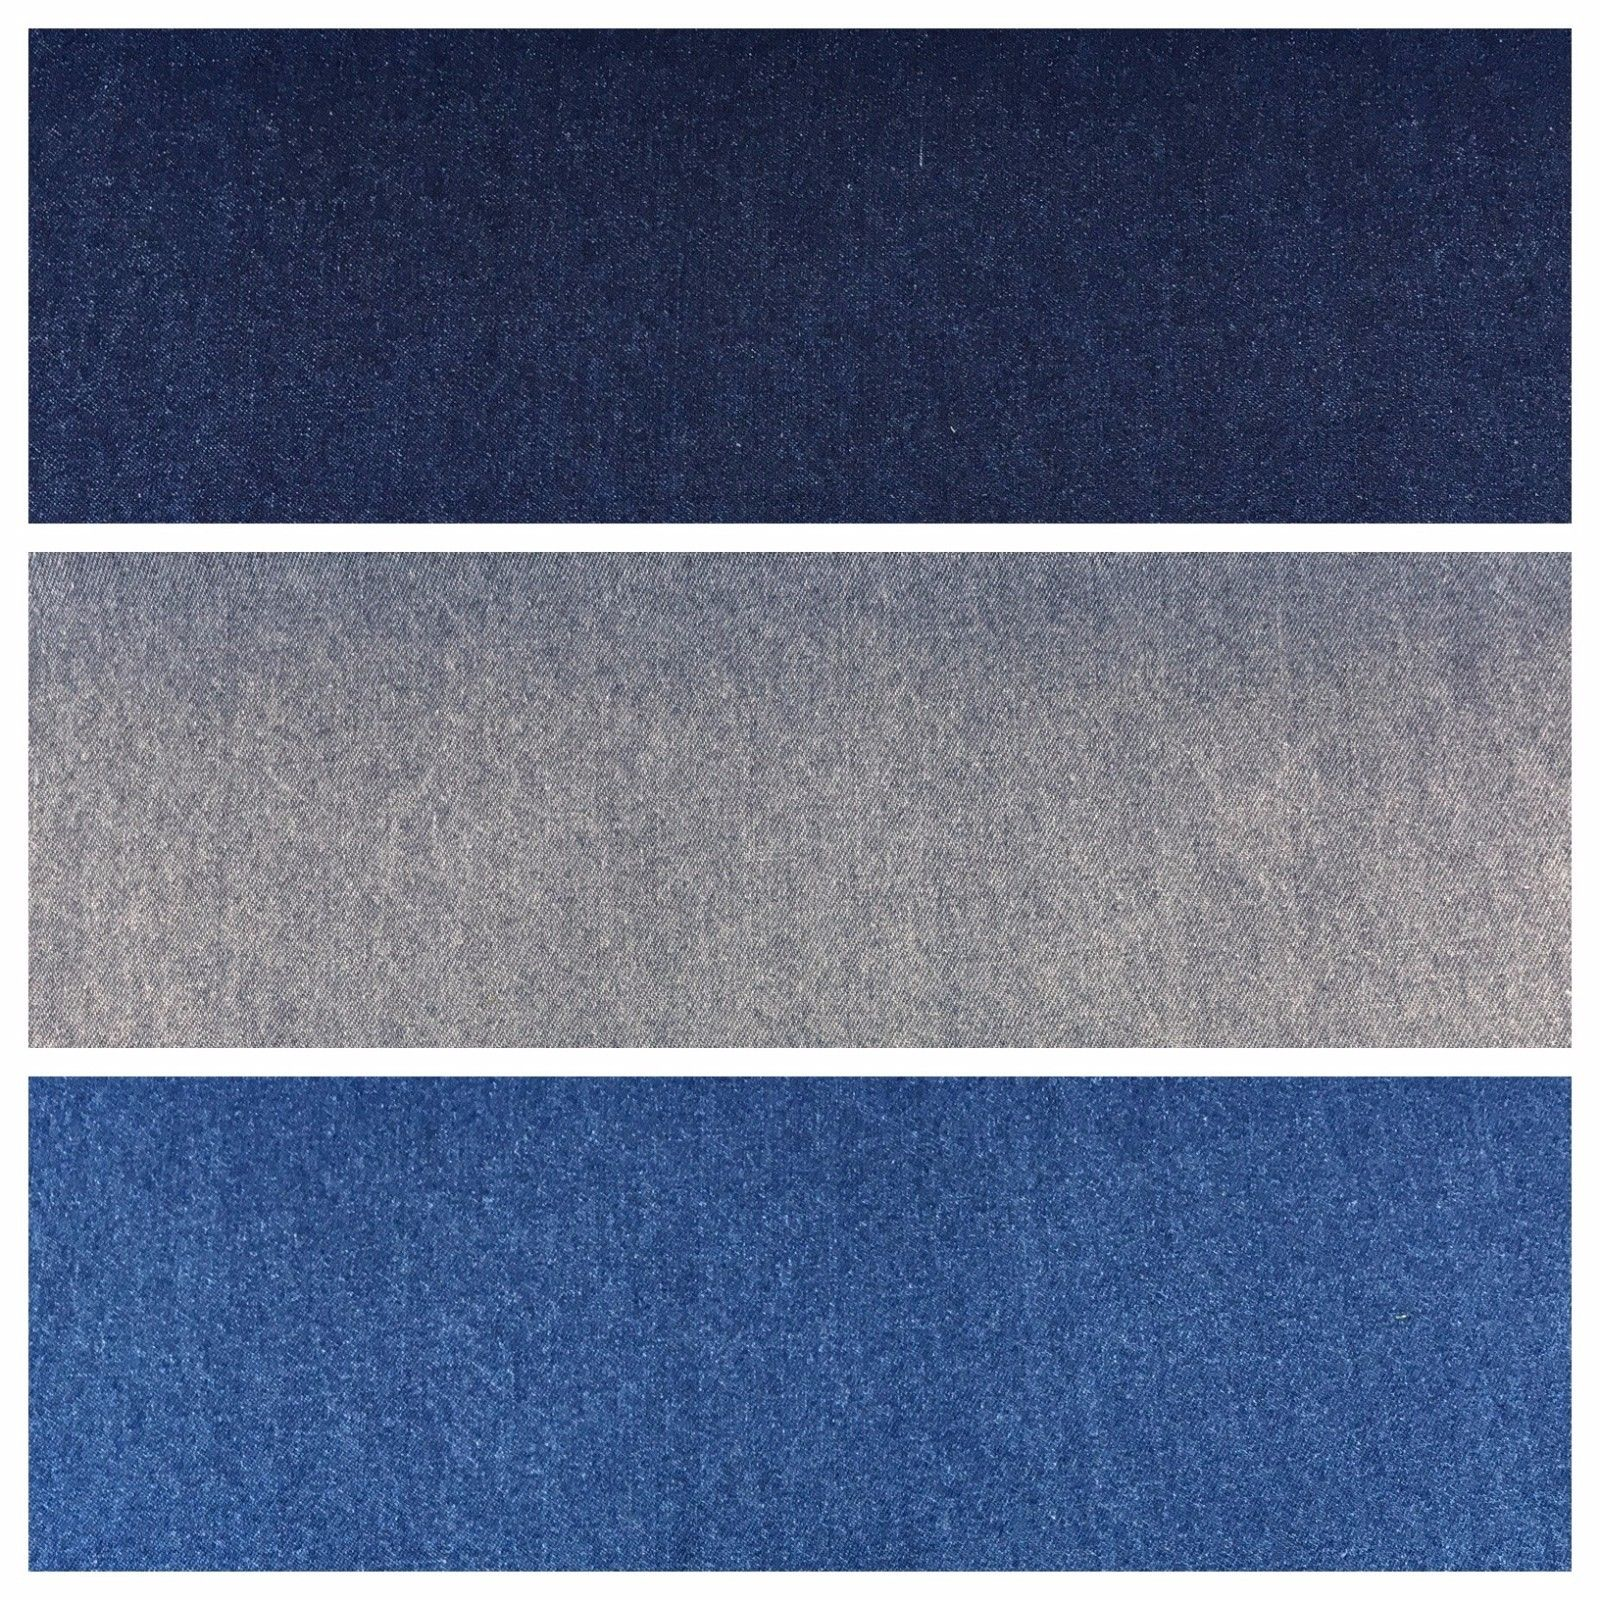 "8oz Washed Denim Light-Medium-Dark Blue Fabric 100% Cotton 58"" Wide M614 Mtex - Midland Textiles & Fabric"